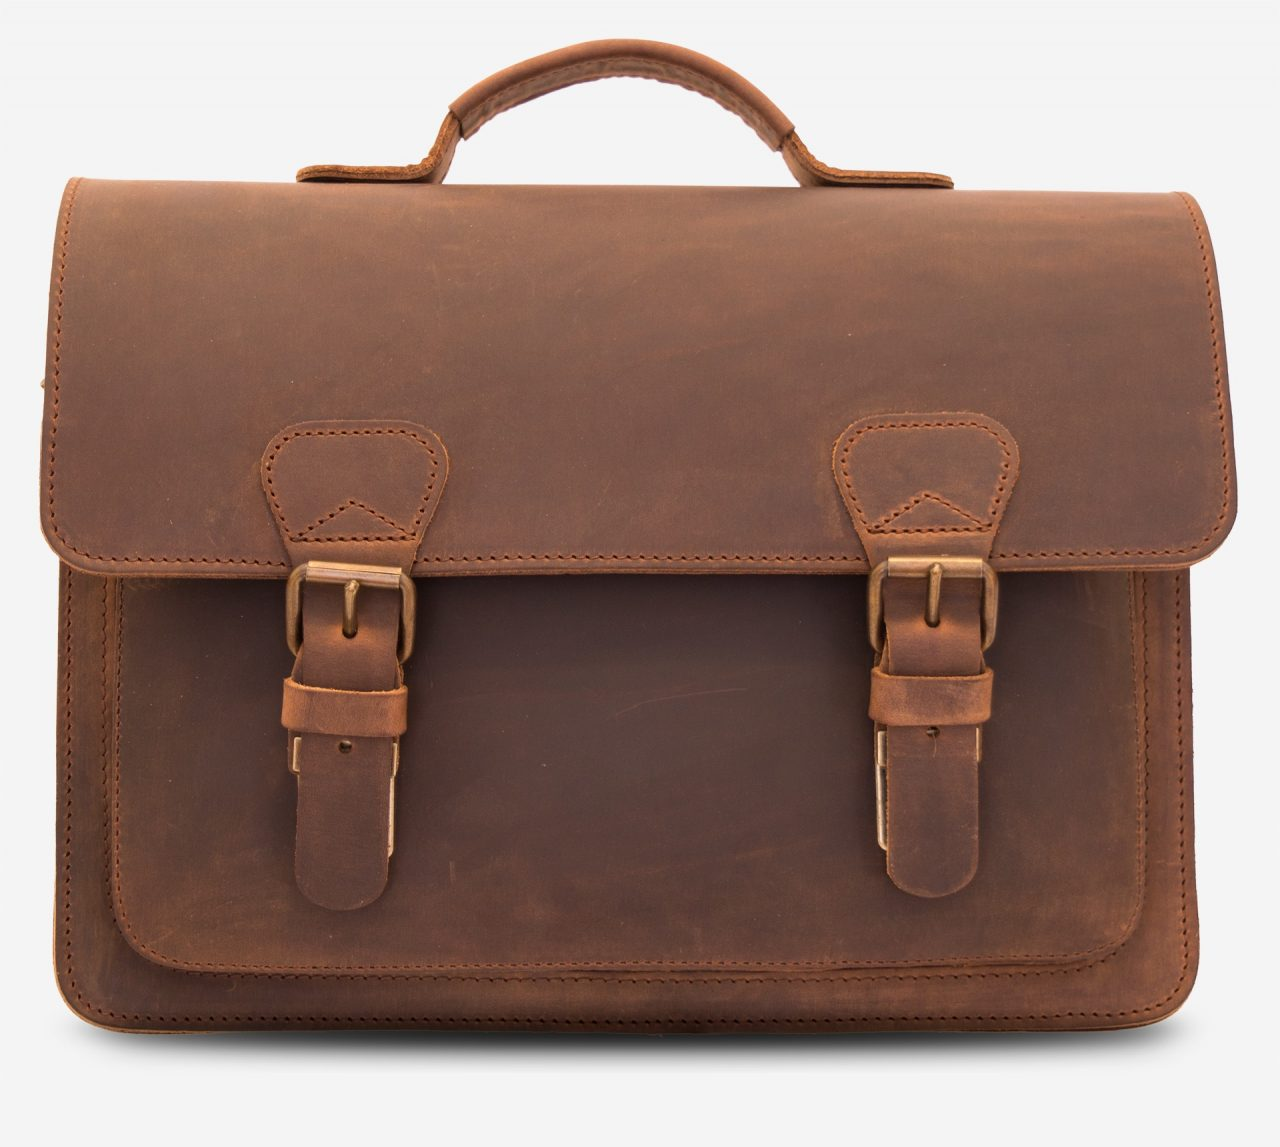 Front view of the vintage leather briefcase 732103.